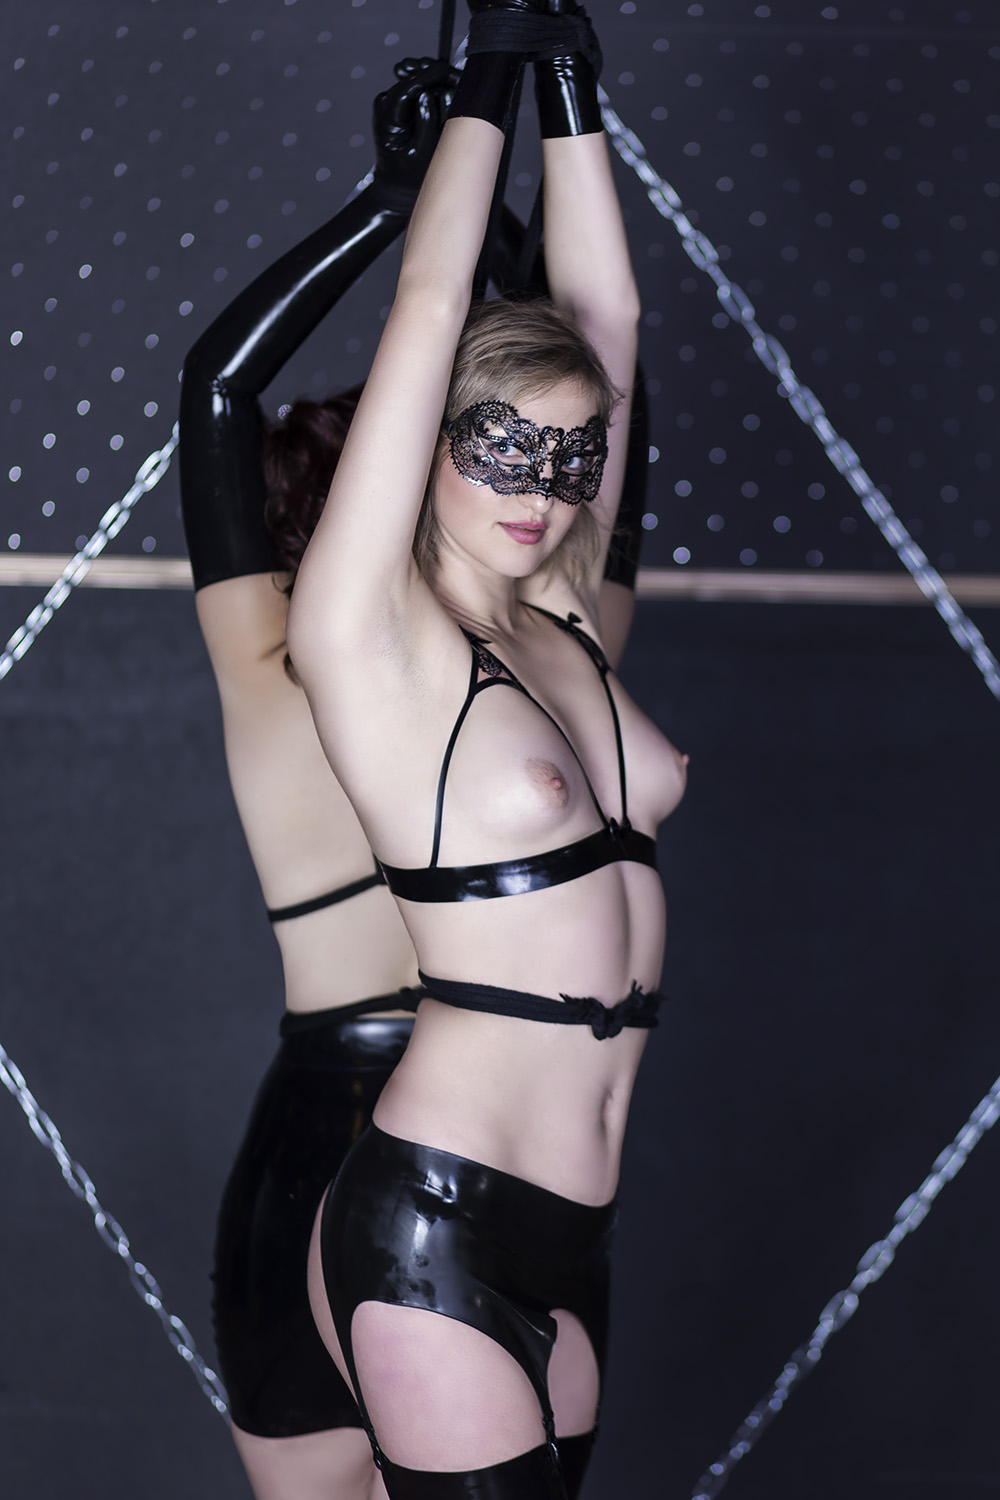 erotic chat latex spannbettlaken